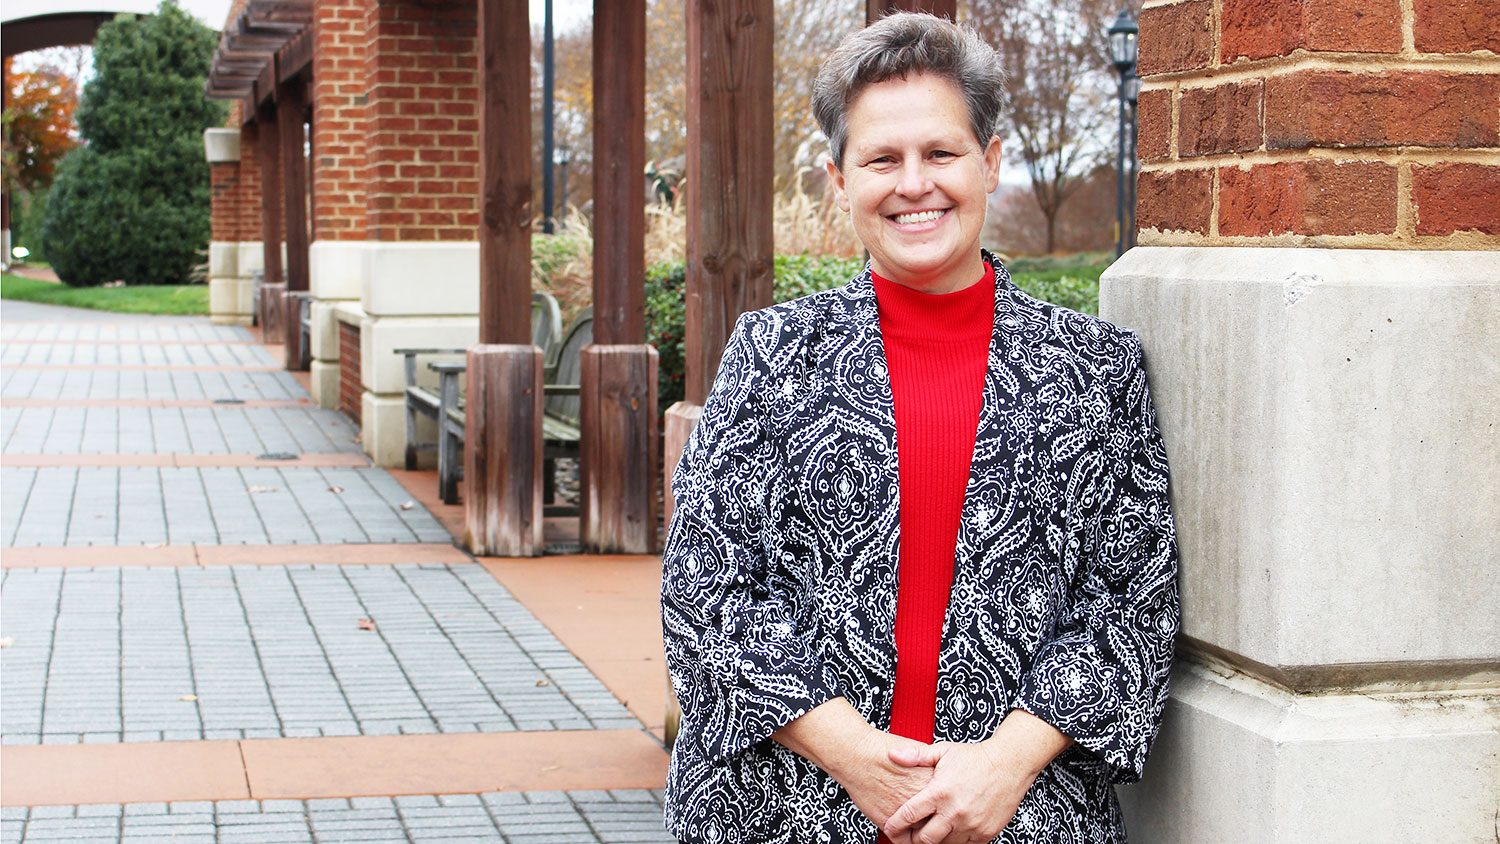 Paula Woodall in front of the State Club at NC State University